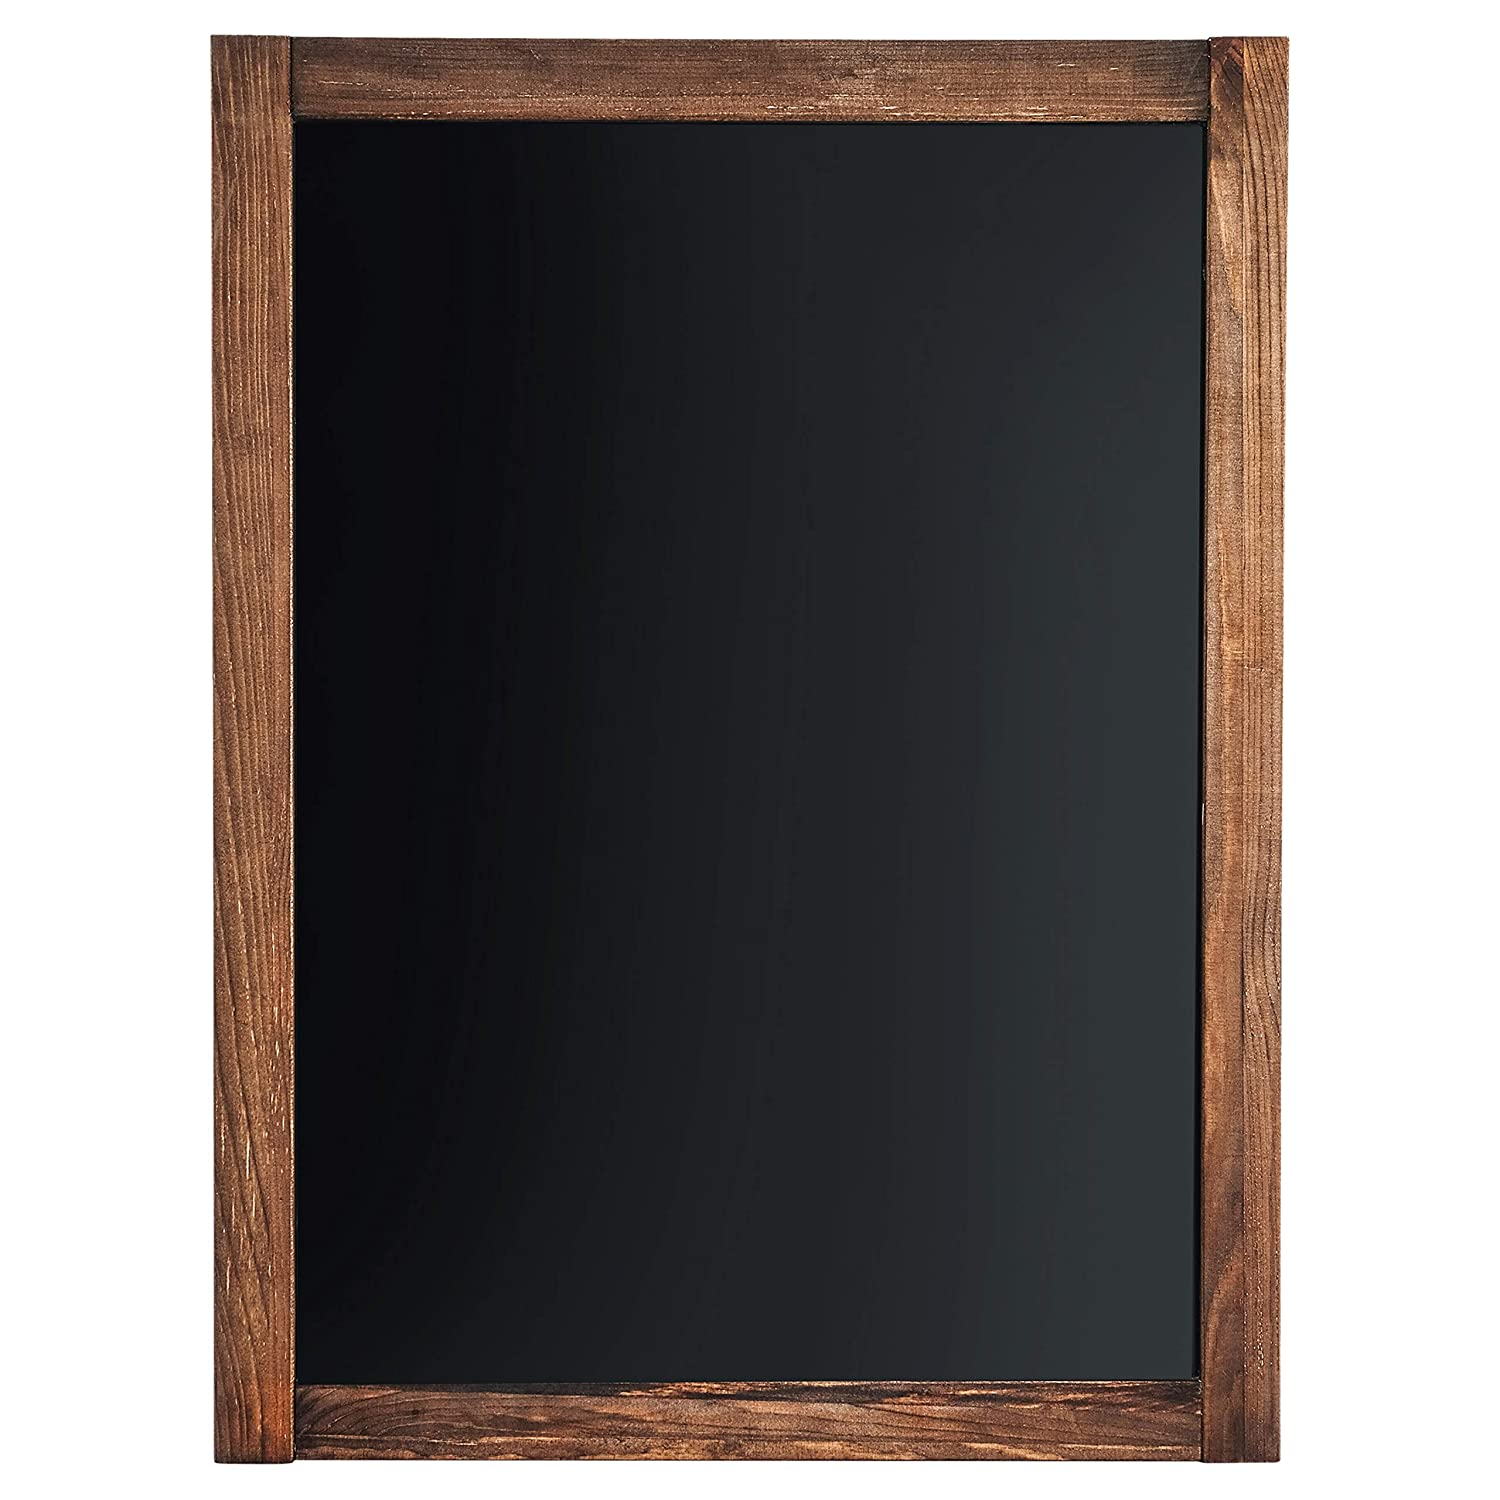 "Chalkboard | Magnetic & Non-Porous | Framed Chalkboard | Vintage Decor | Chalk Board for Wedding, Kitchen, Bar, Restaurant, Menu & Home | Chalkboard Sign | 18"" x 24"" 